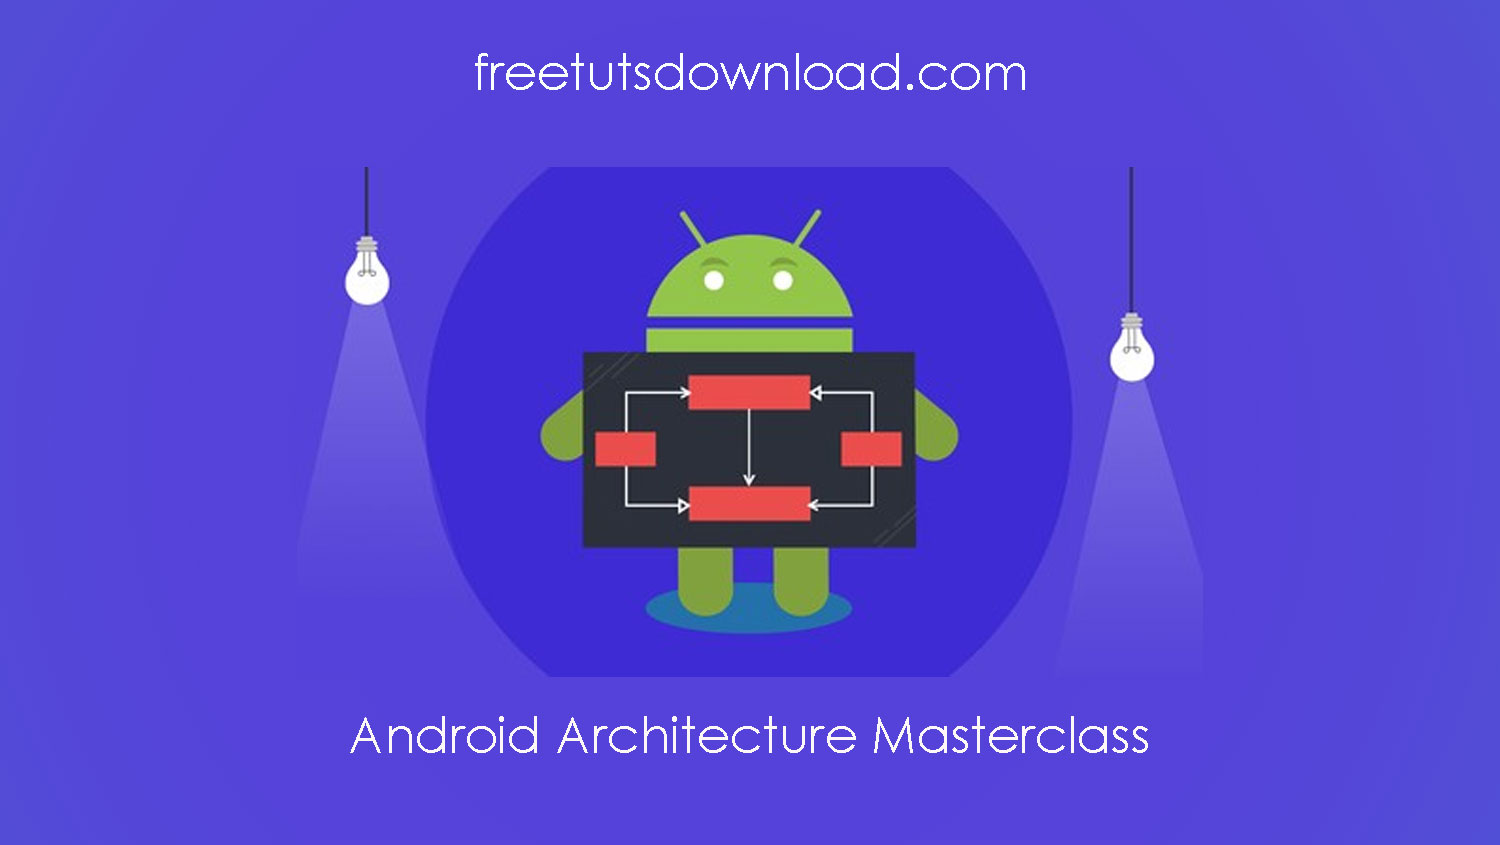 Android Architecture Masterclass Free Download